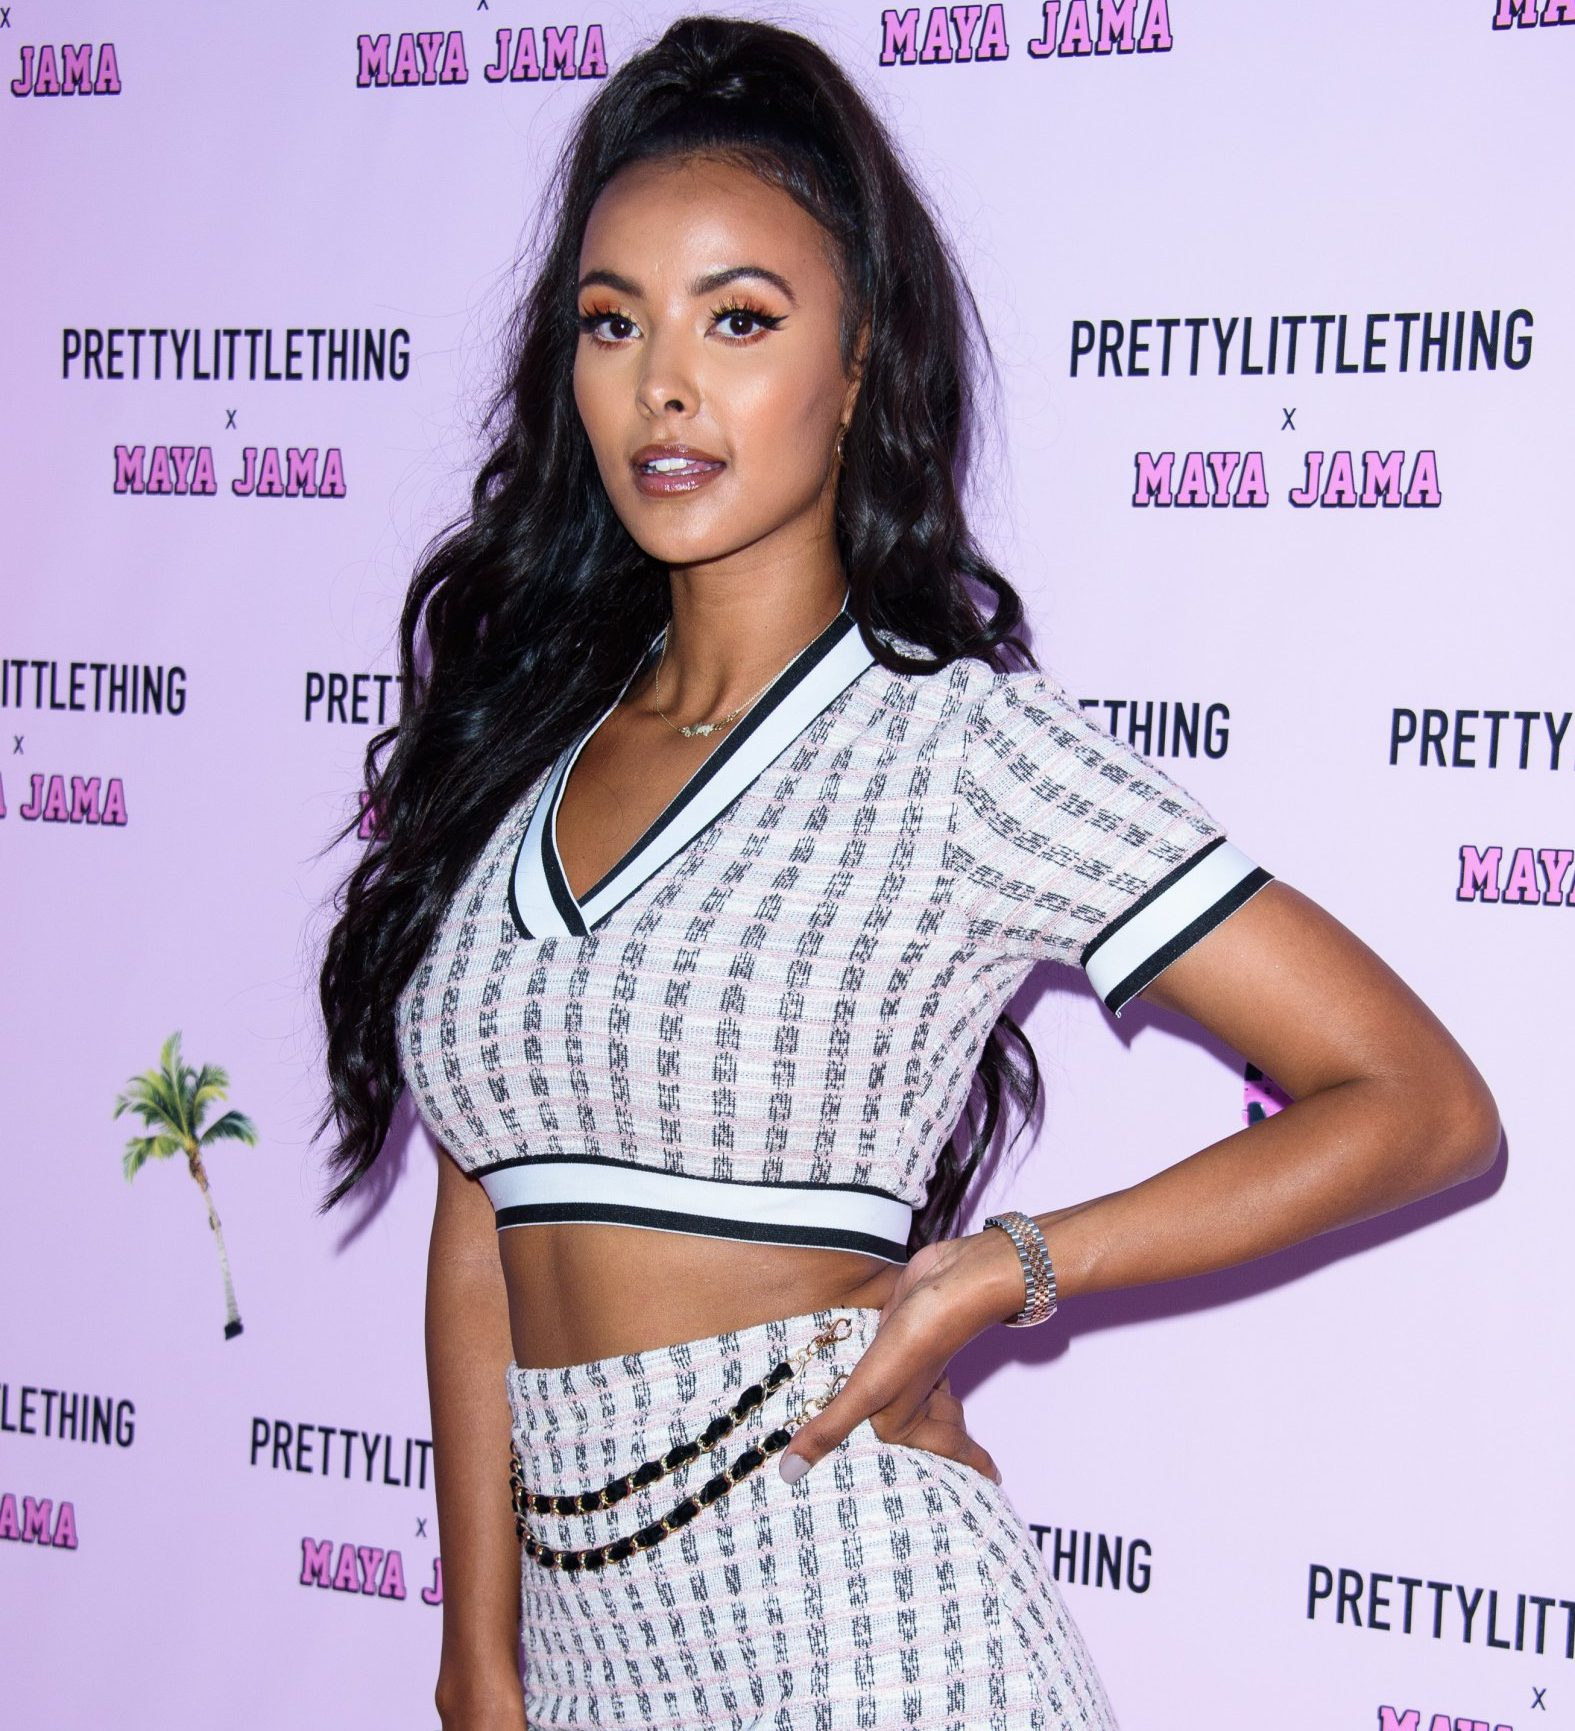 LONDON, ENGLAND - JUNE 25: Maya Jama attends the PrettyLittleThing x Maya Jama Launch Party at MNKY HSE on June 25, 2018 in London, England. (Photo by Joe Maher/Getty Images)